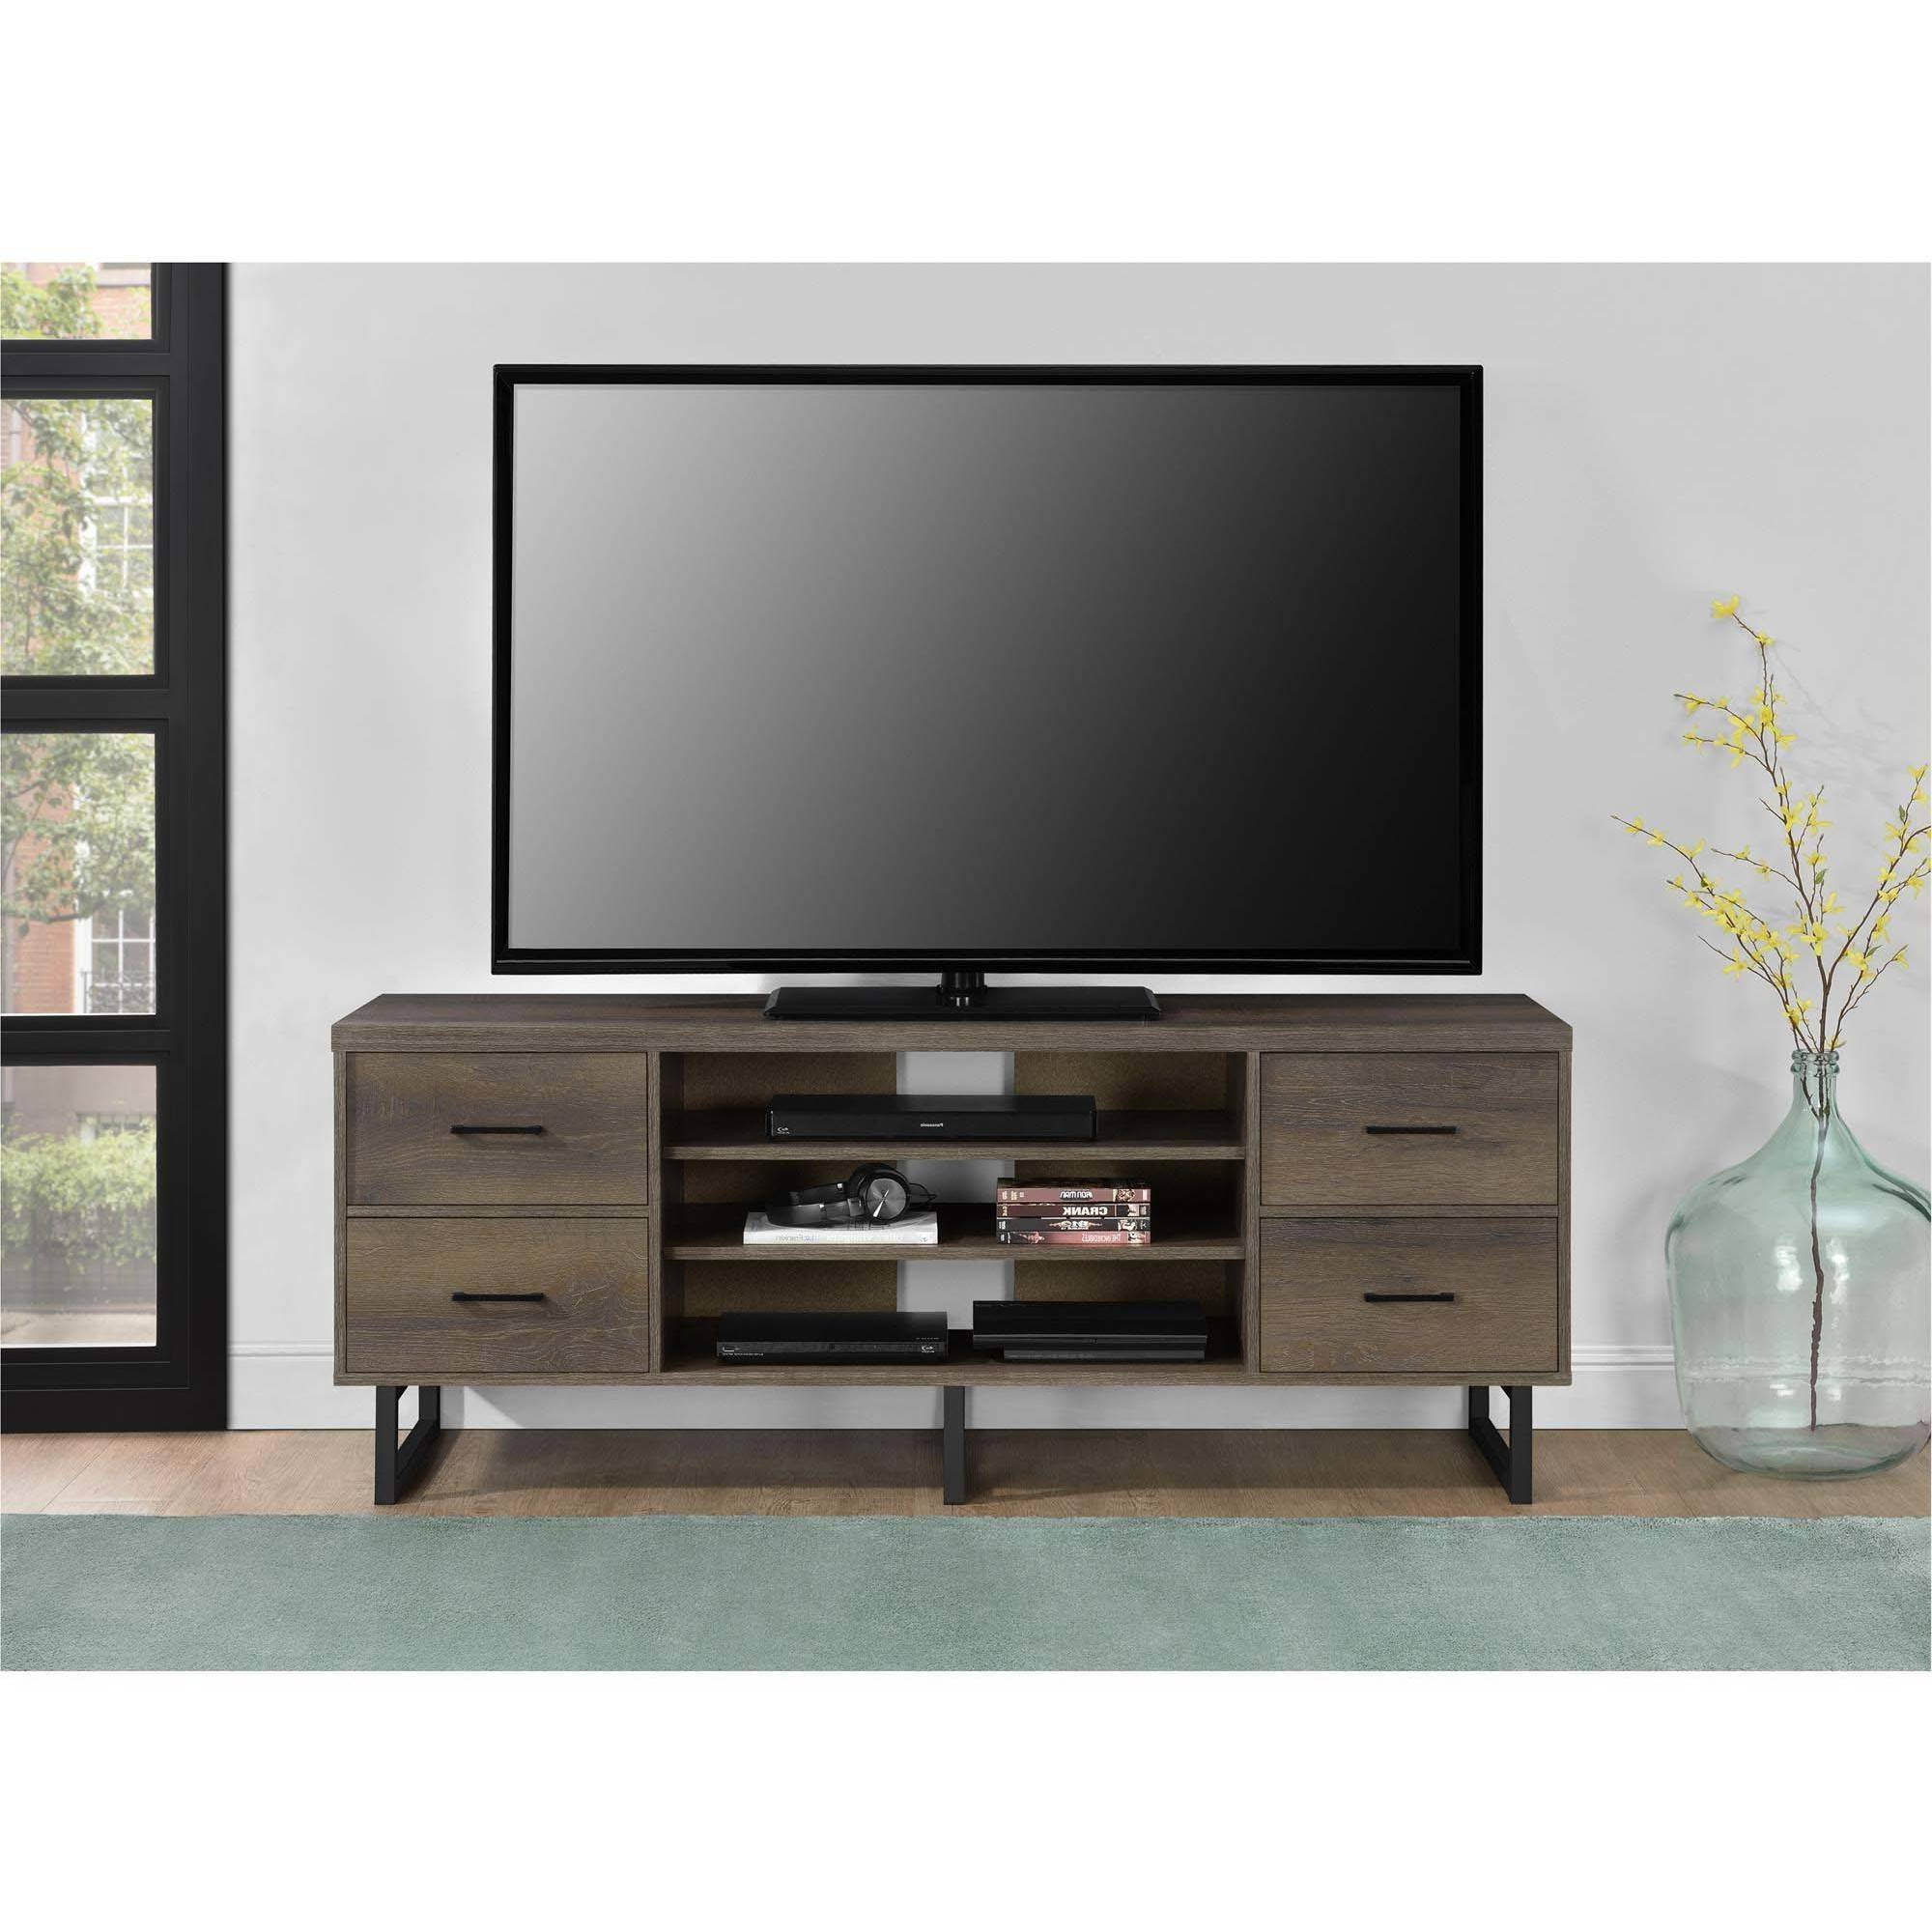 Ameriwood Home Candon Tv Stand With Bins For Tvs Up To 60 Inside Widely Used Harbor Wide Tv Stands (View 2 of 25)